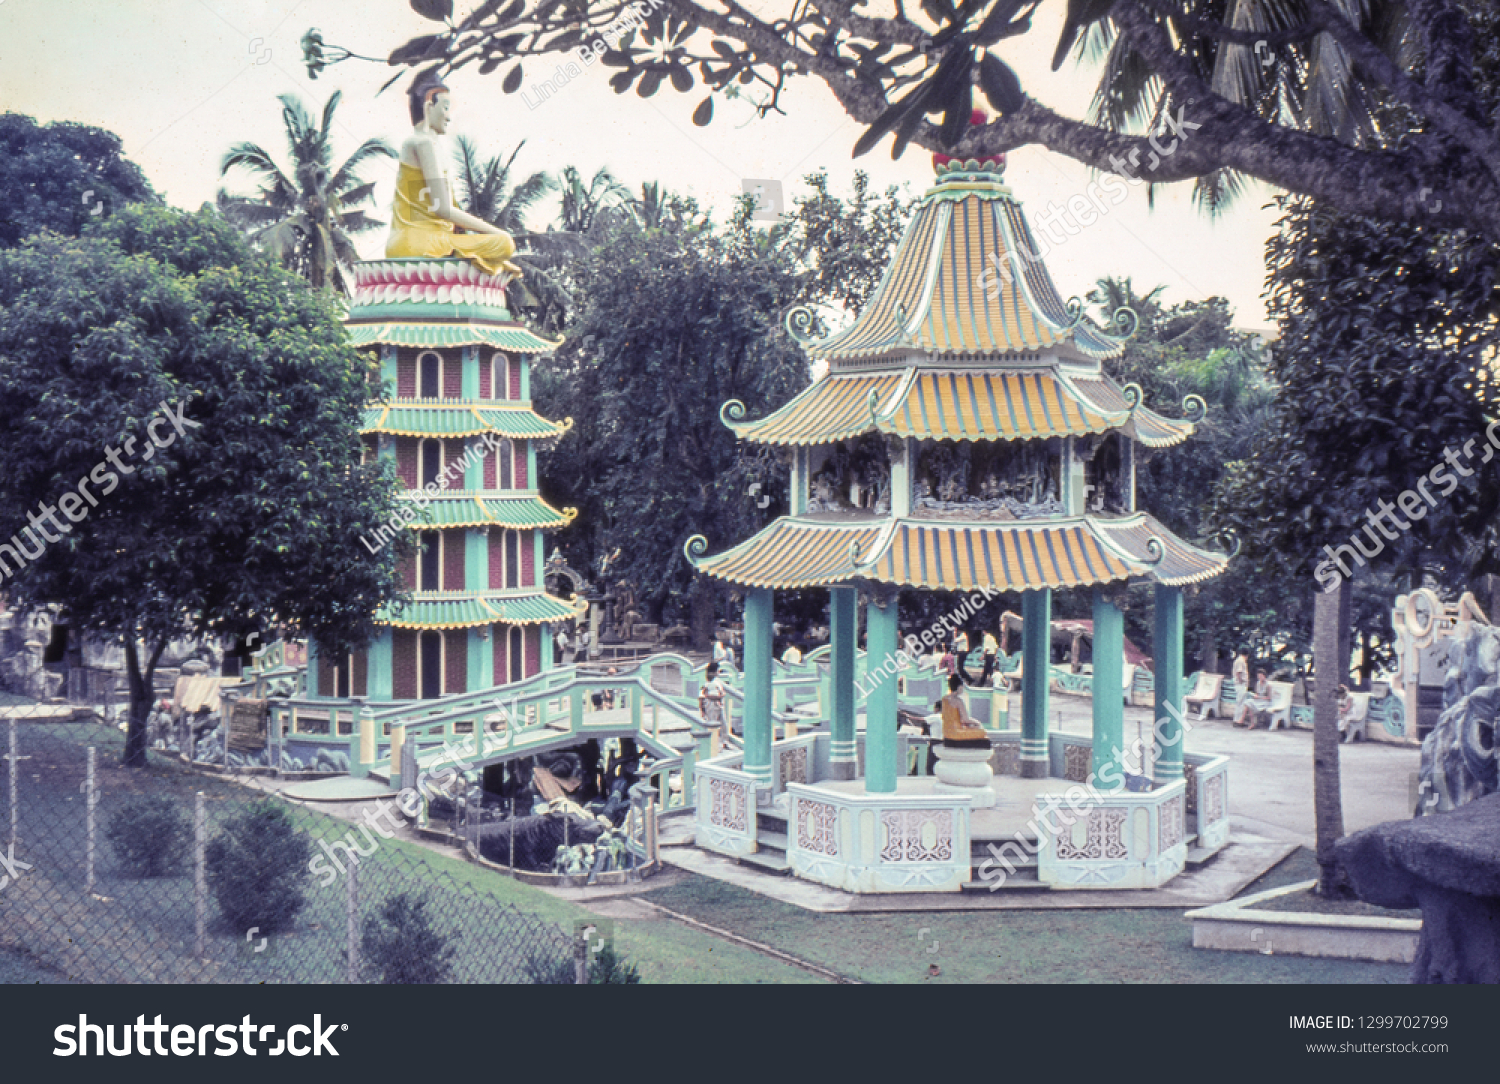 Haw Par Villa, Singapore - Circa, 1964: The pavilion and pagoda at the Tiger Balm Garden. The public gardens were opened in 1937 to promote Tiger Balm products. Vintage photo from a 35mm slide.